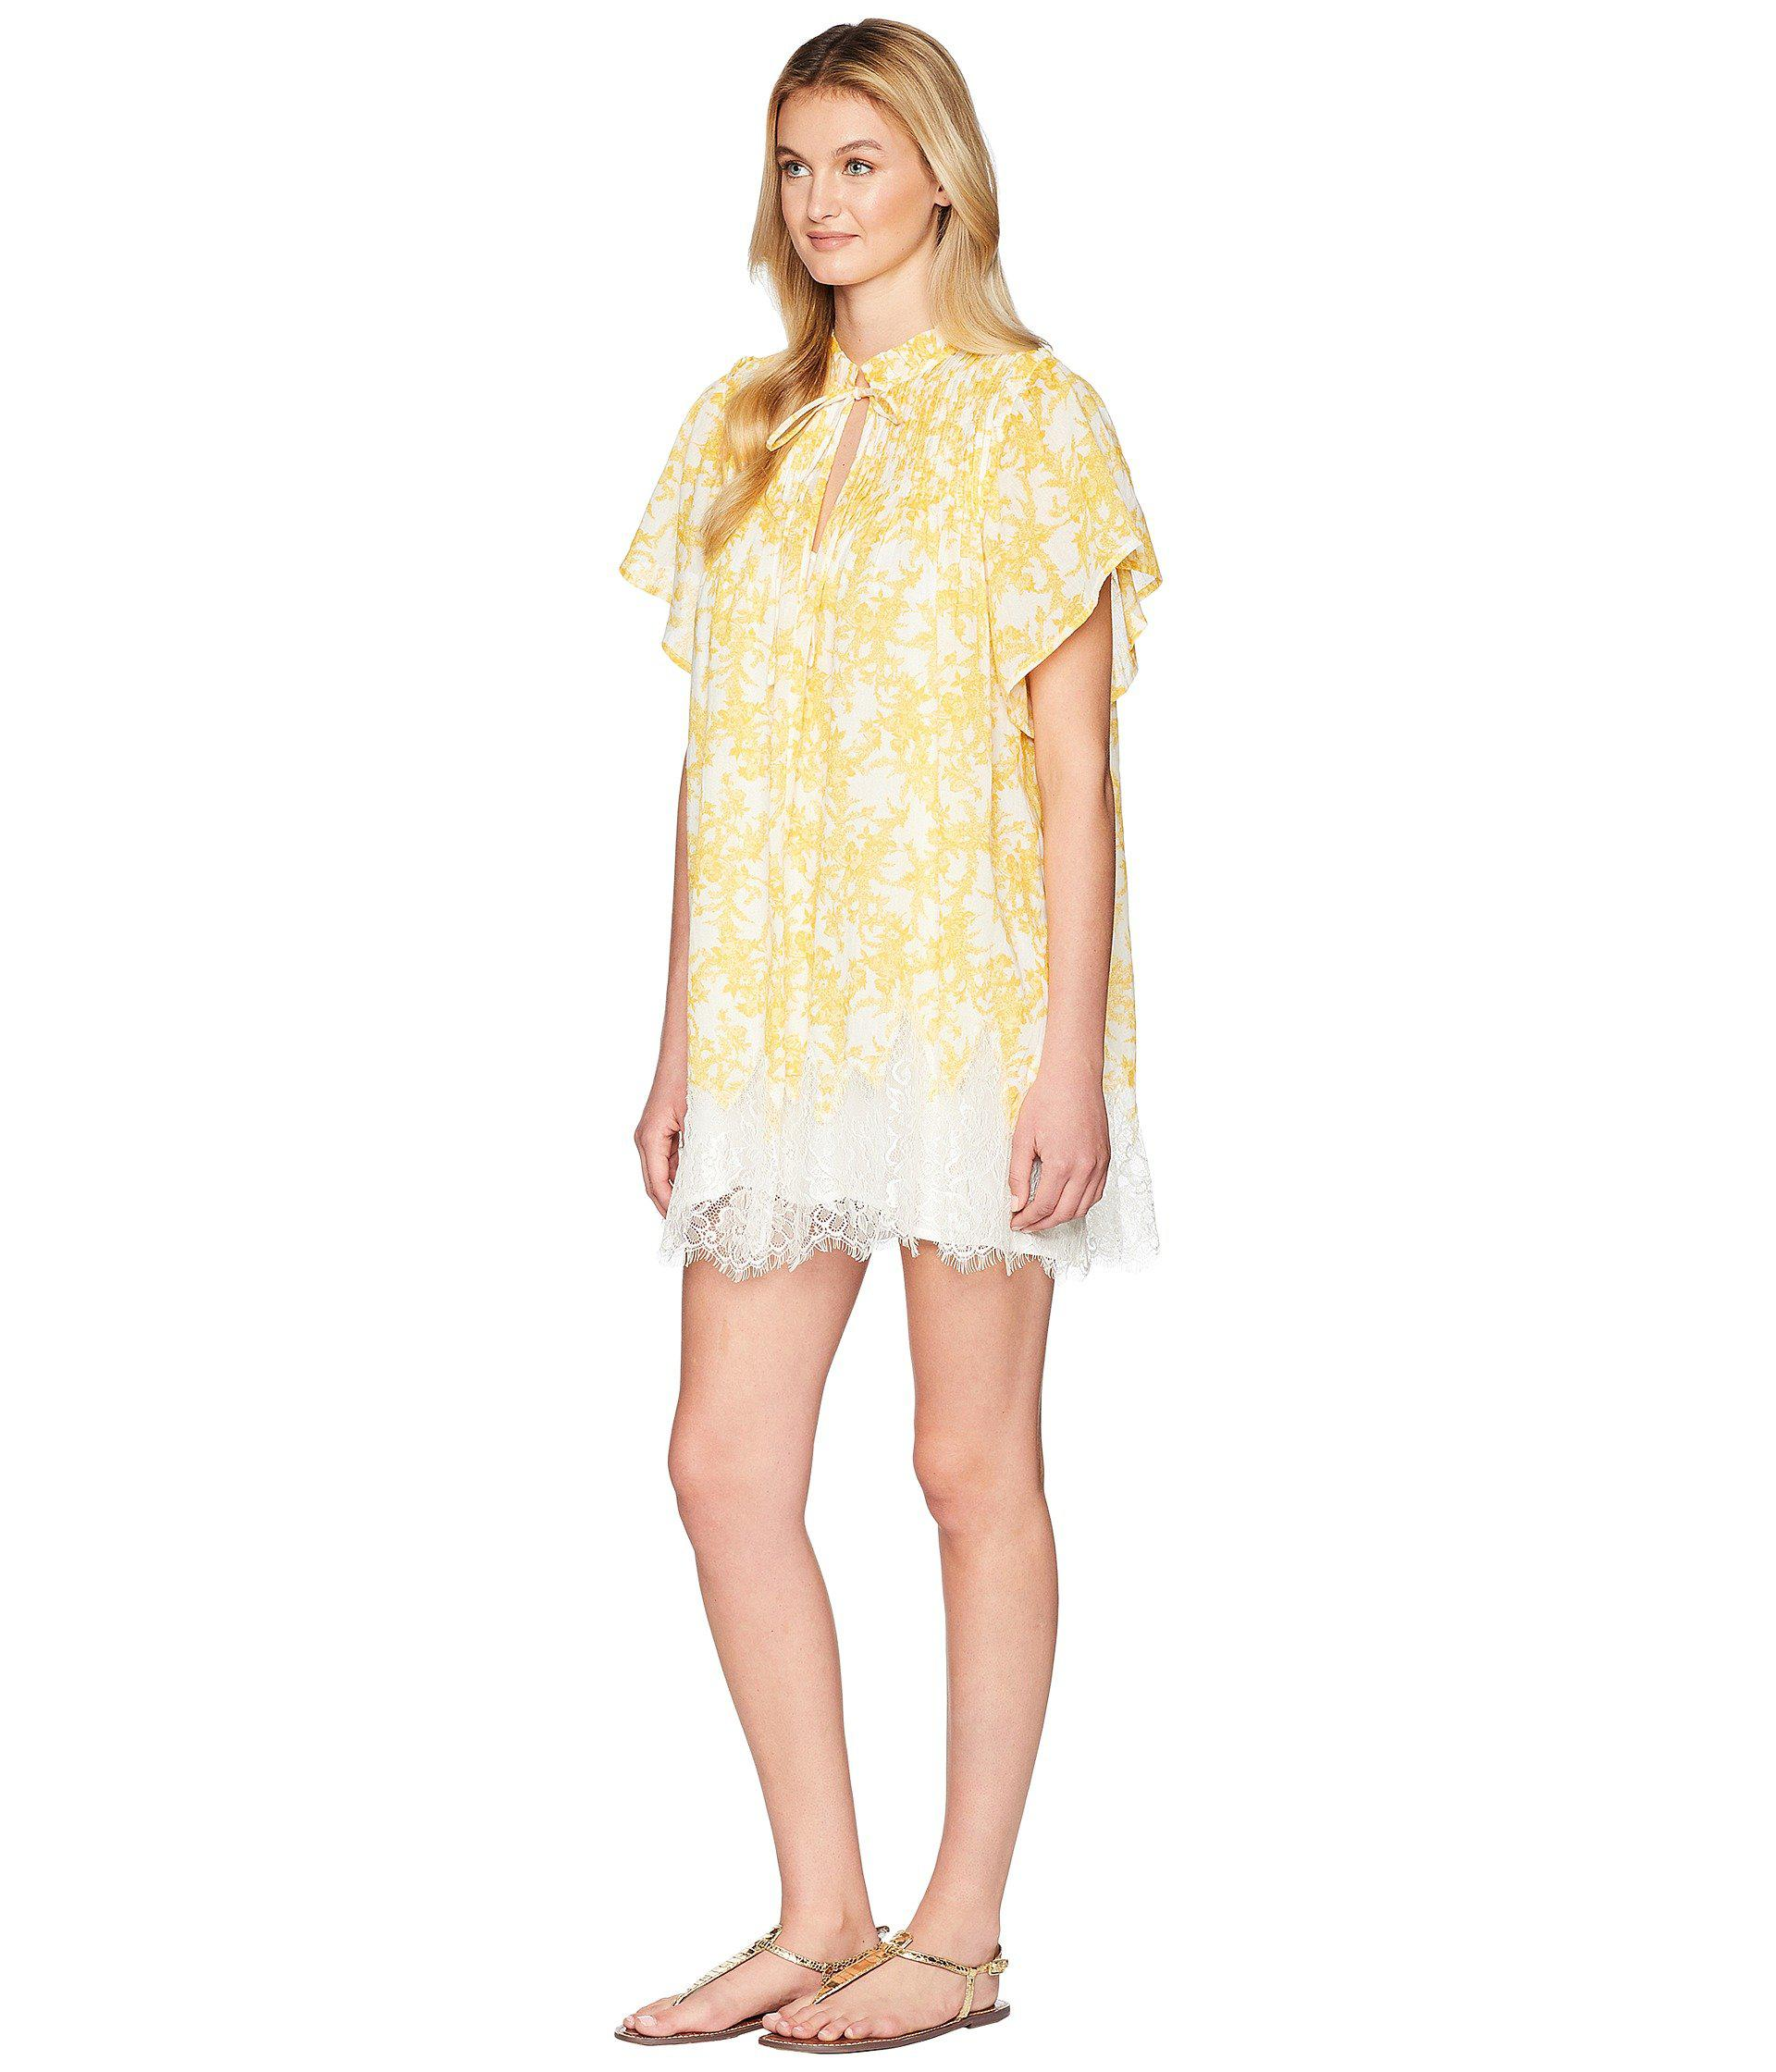 9137120e580d Lyst - Free People Marigold Mini Dress in White - Save 51%